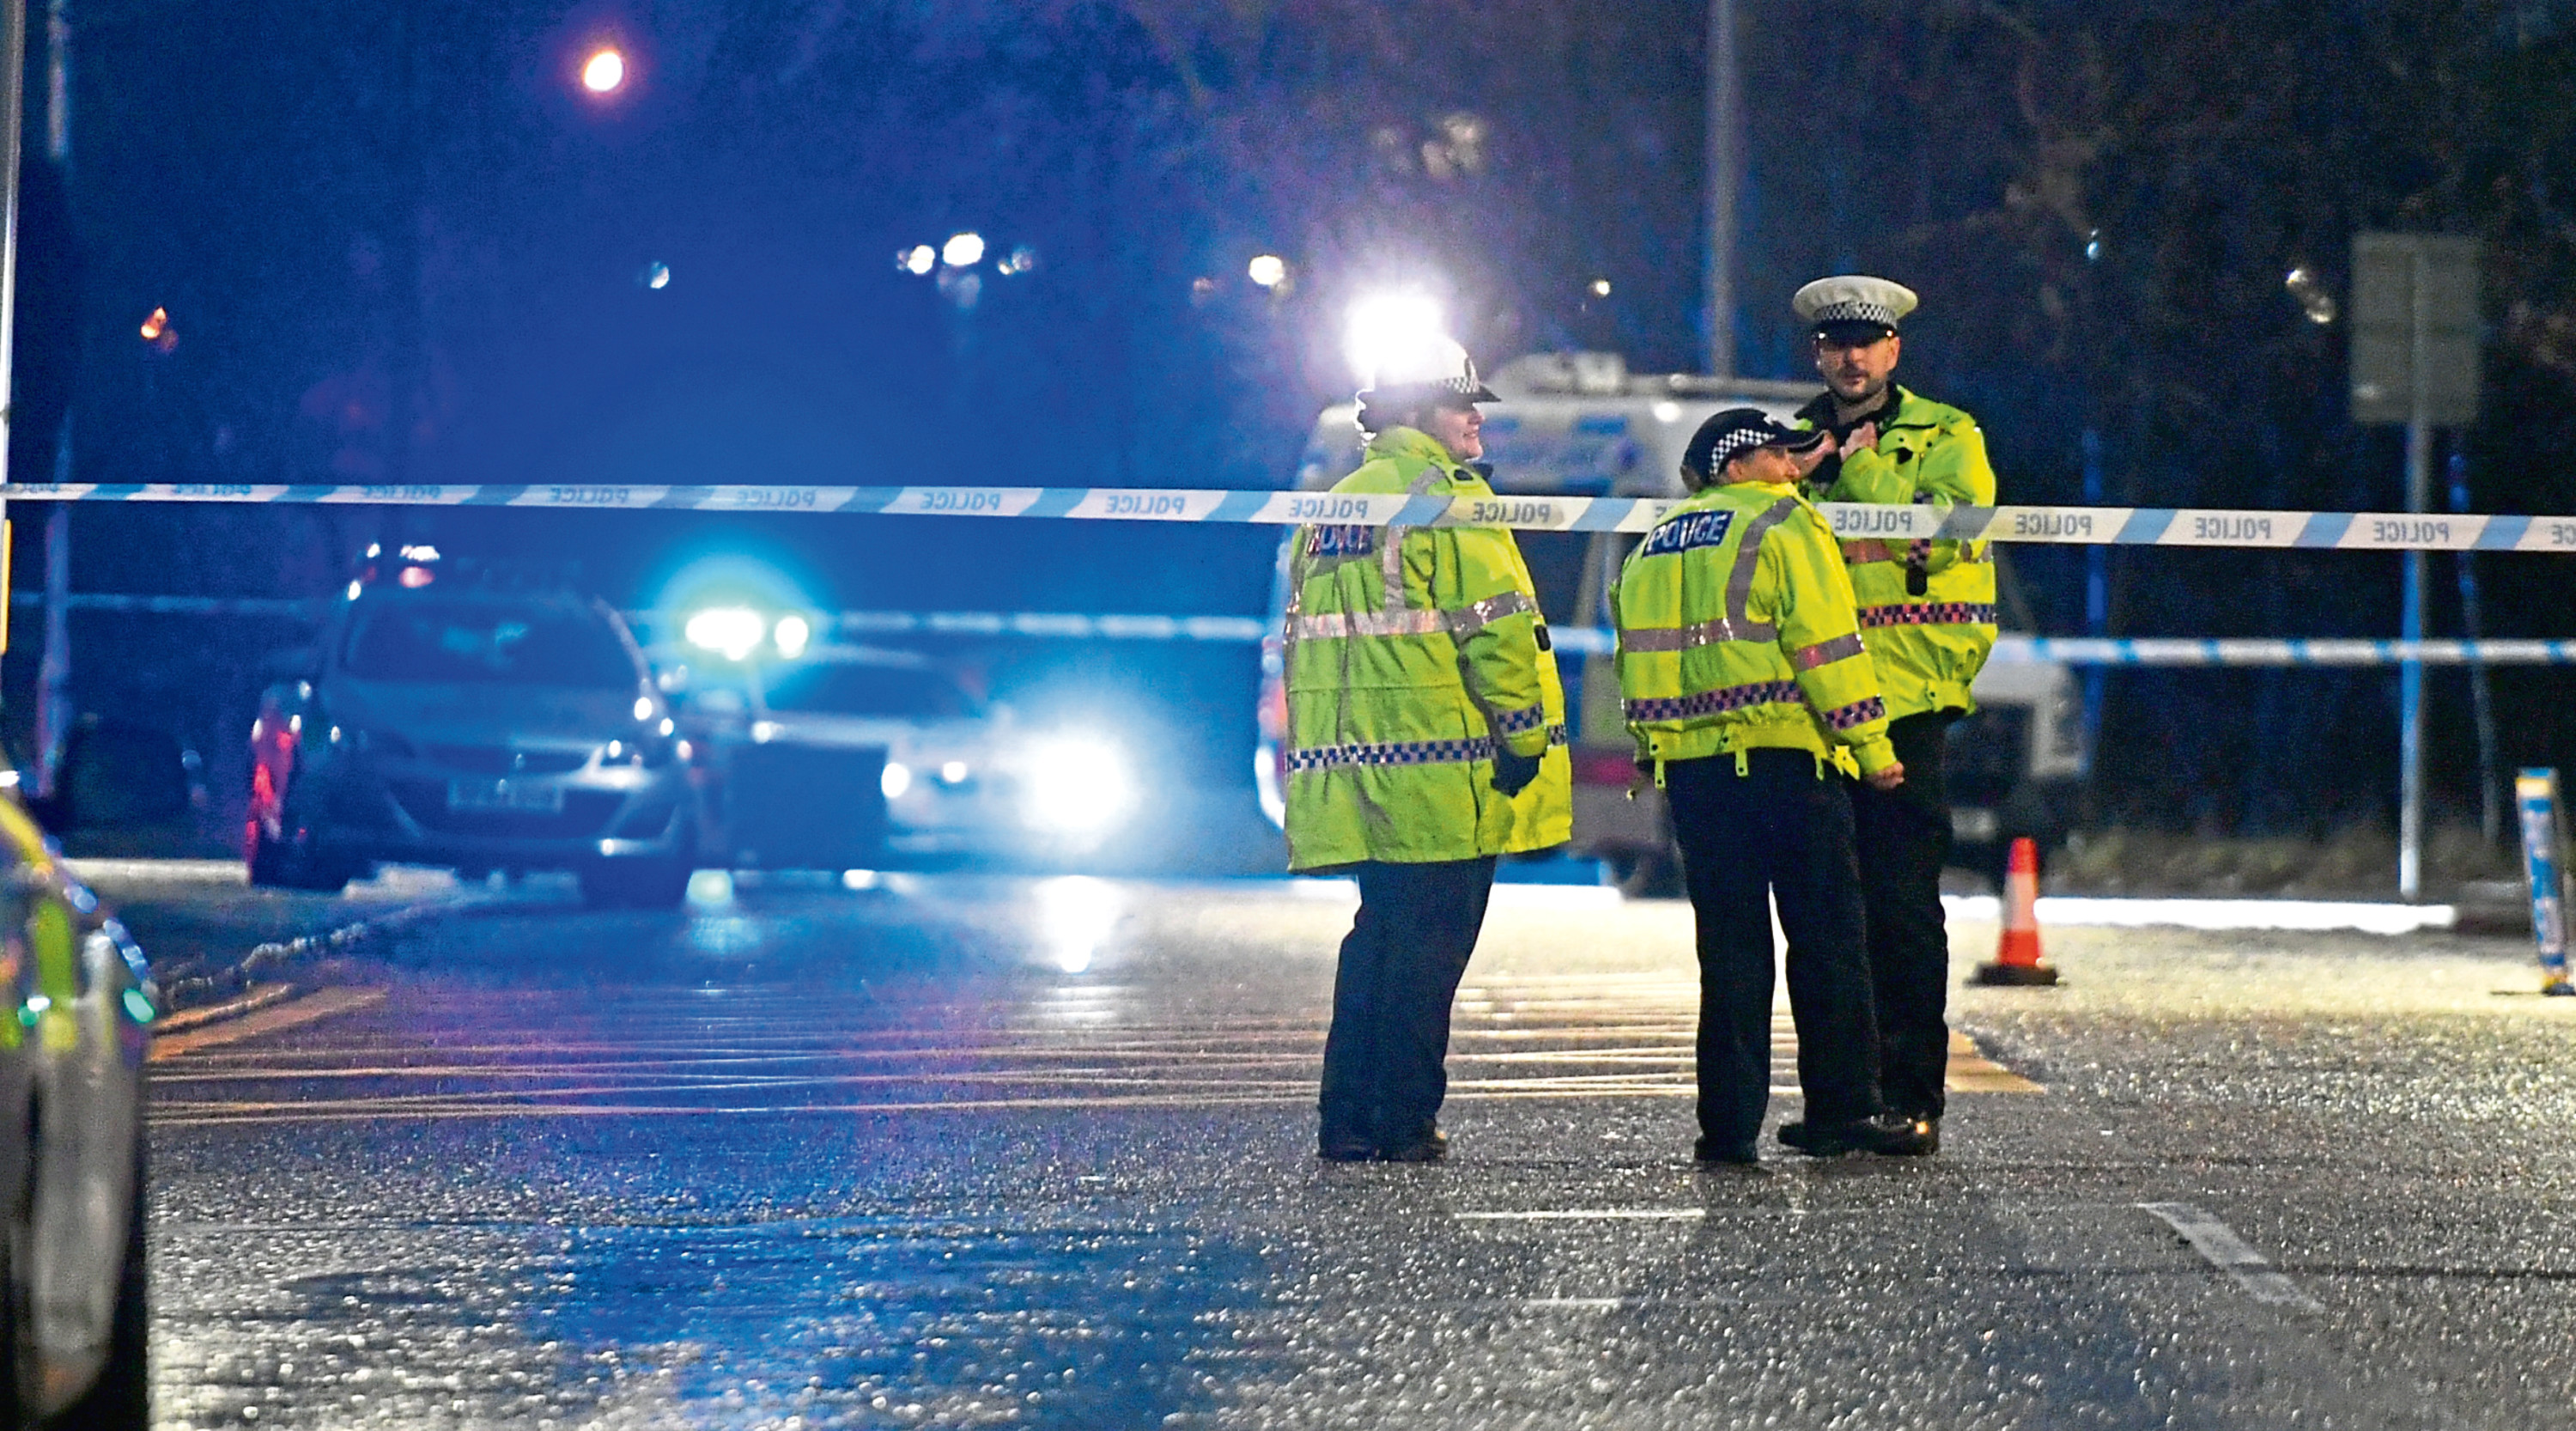 Police at the scene of the crash where a 66-year-old man was hit by a car on Monday, leaving him with serious injuries